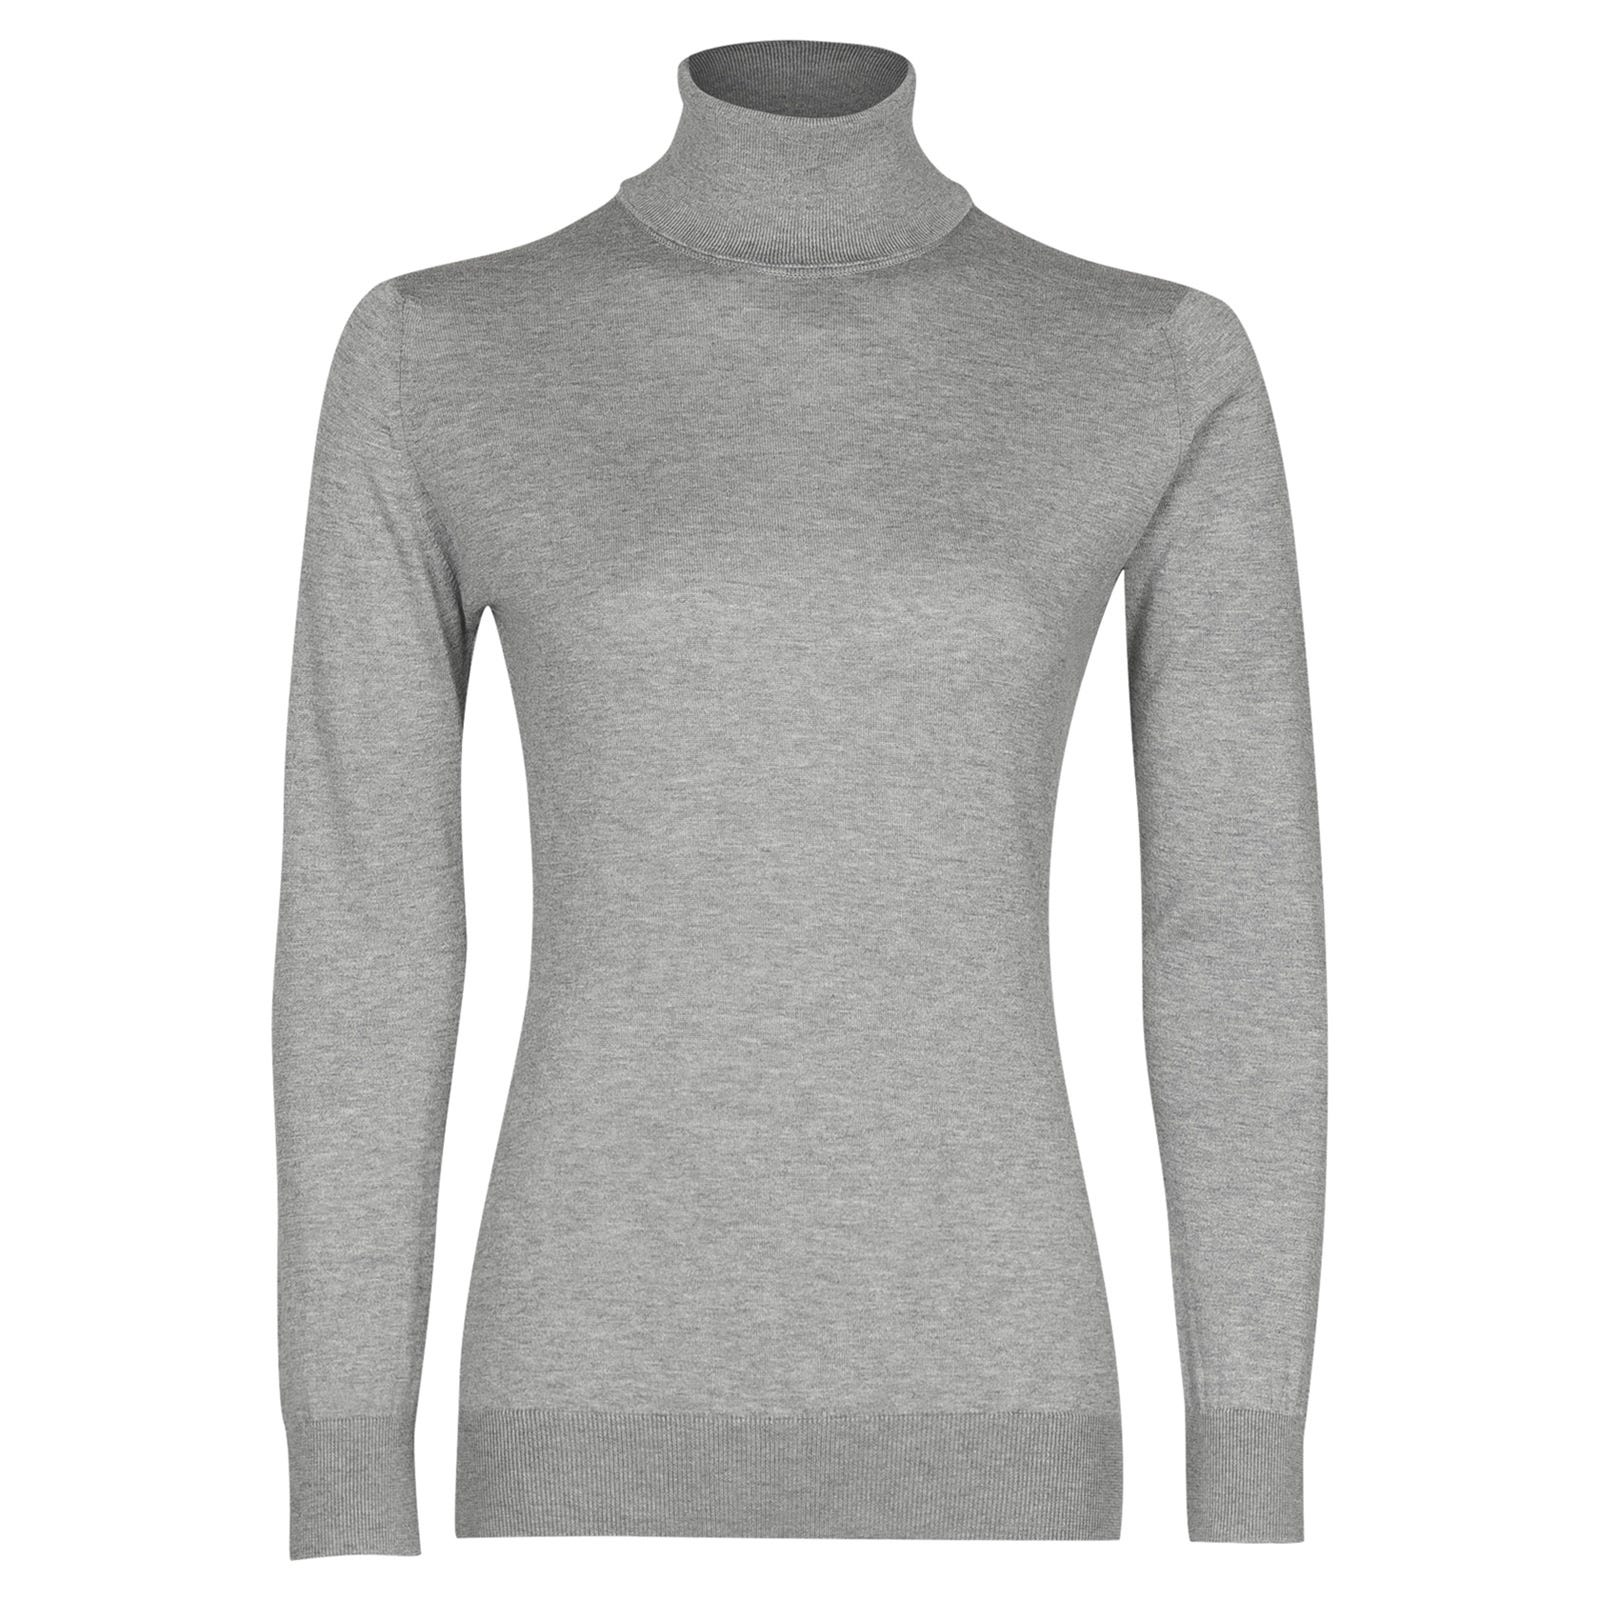 John Smedley pimlico Sea Island Cotton Sweater in Silver-S